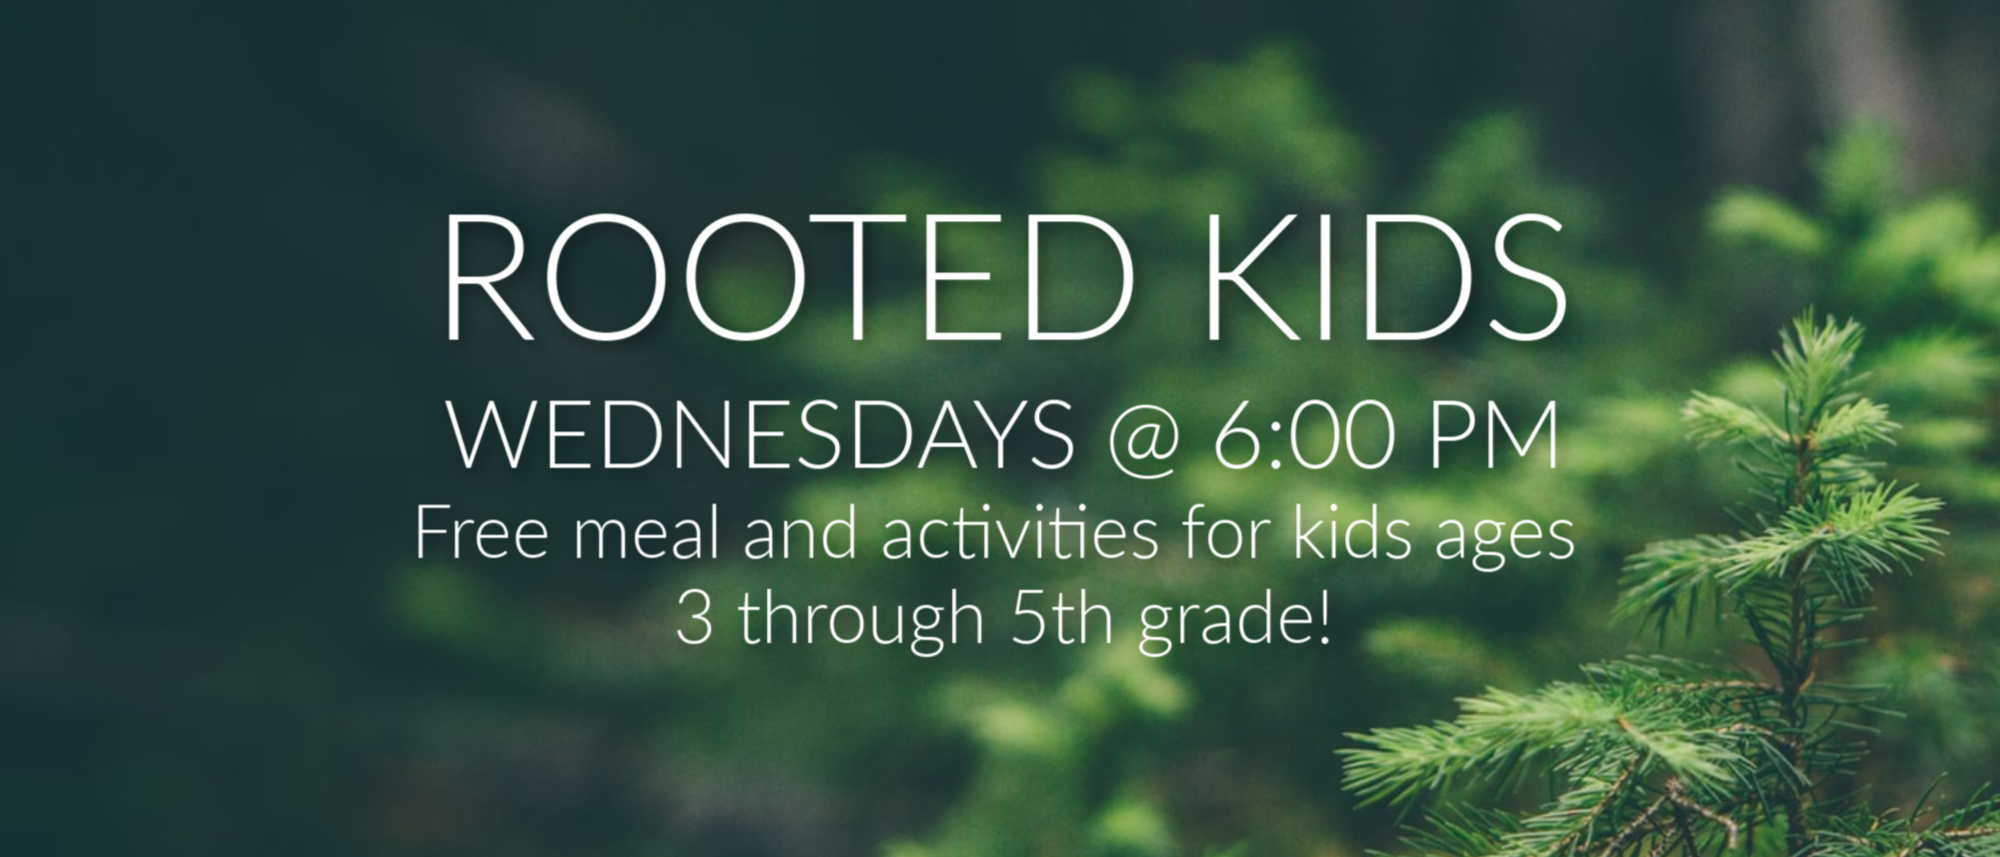 Rooted Kids meet at Journey Church on Wednesday nights at 6 pm